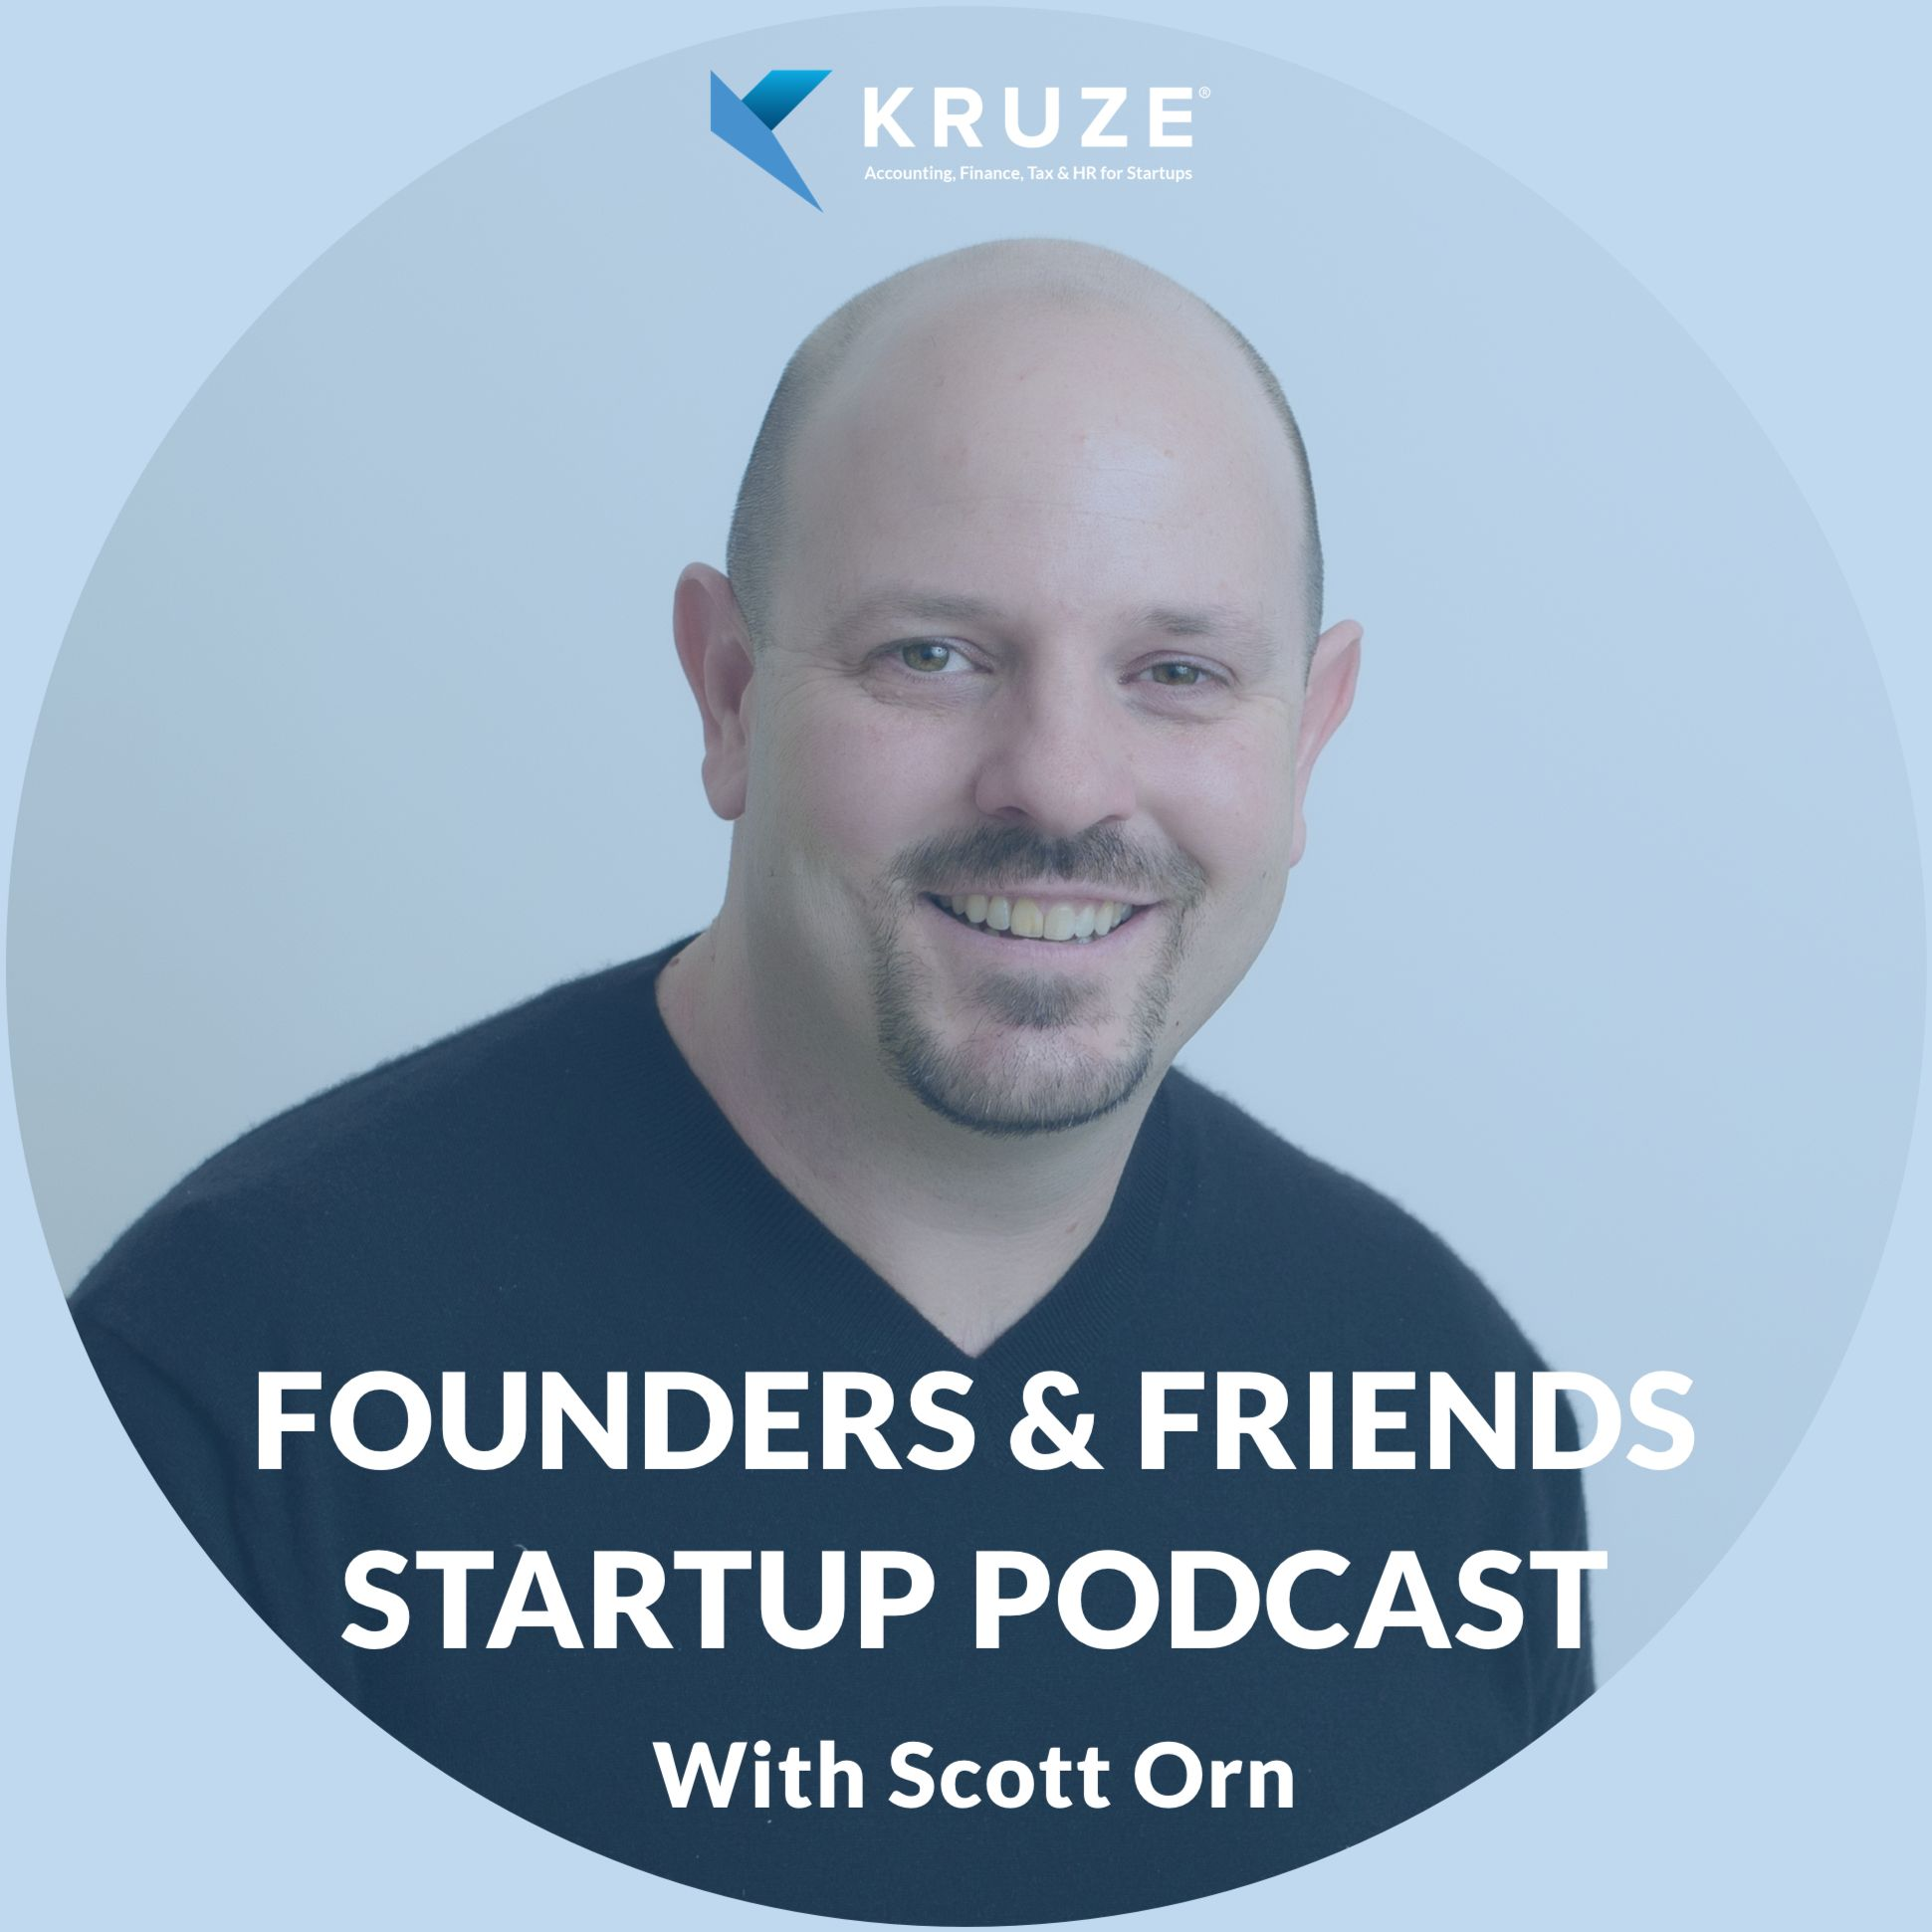 Zero to 100s of clients and $93 million in VC funding with Mike Whitmire of Floqast